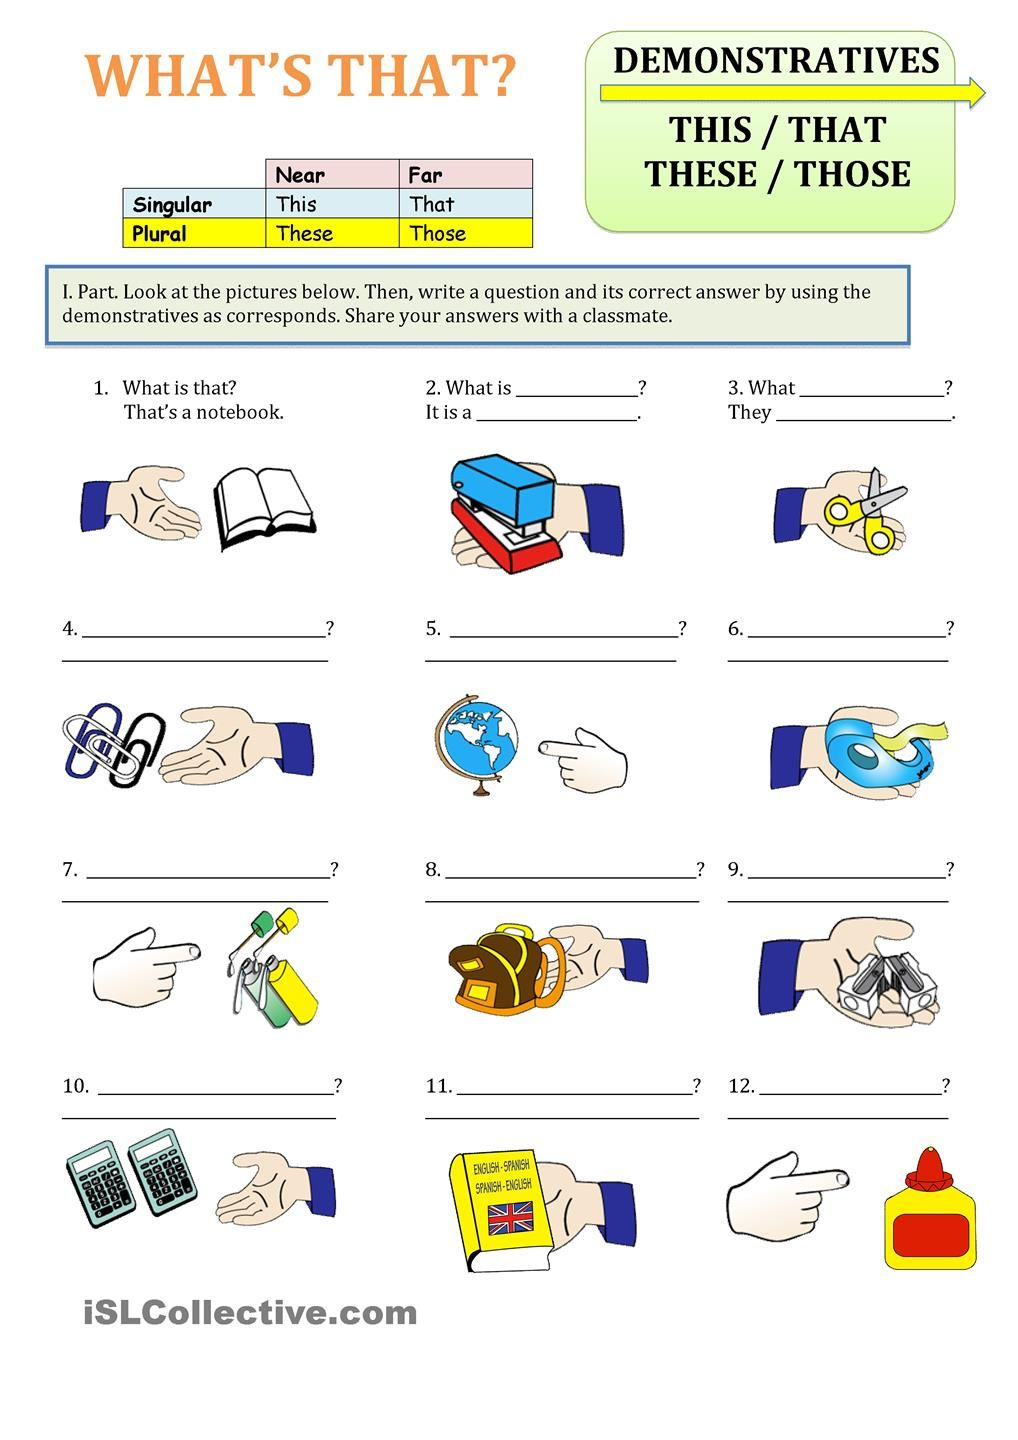 Uncategorized This That These Those Worksheets demonstratives this that those these english pinterest these